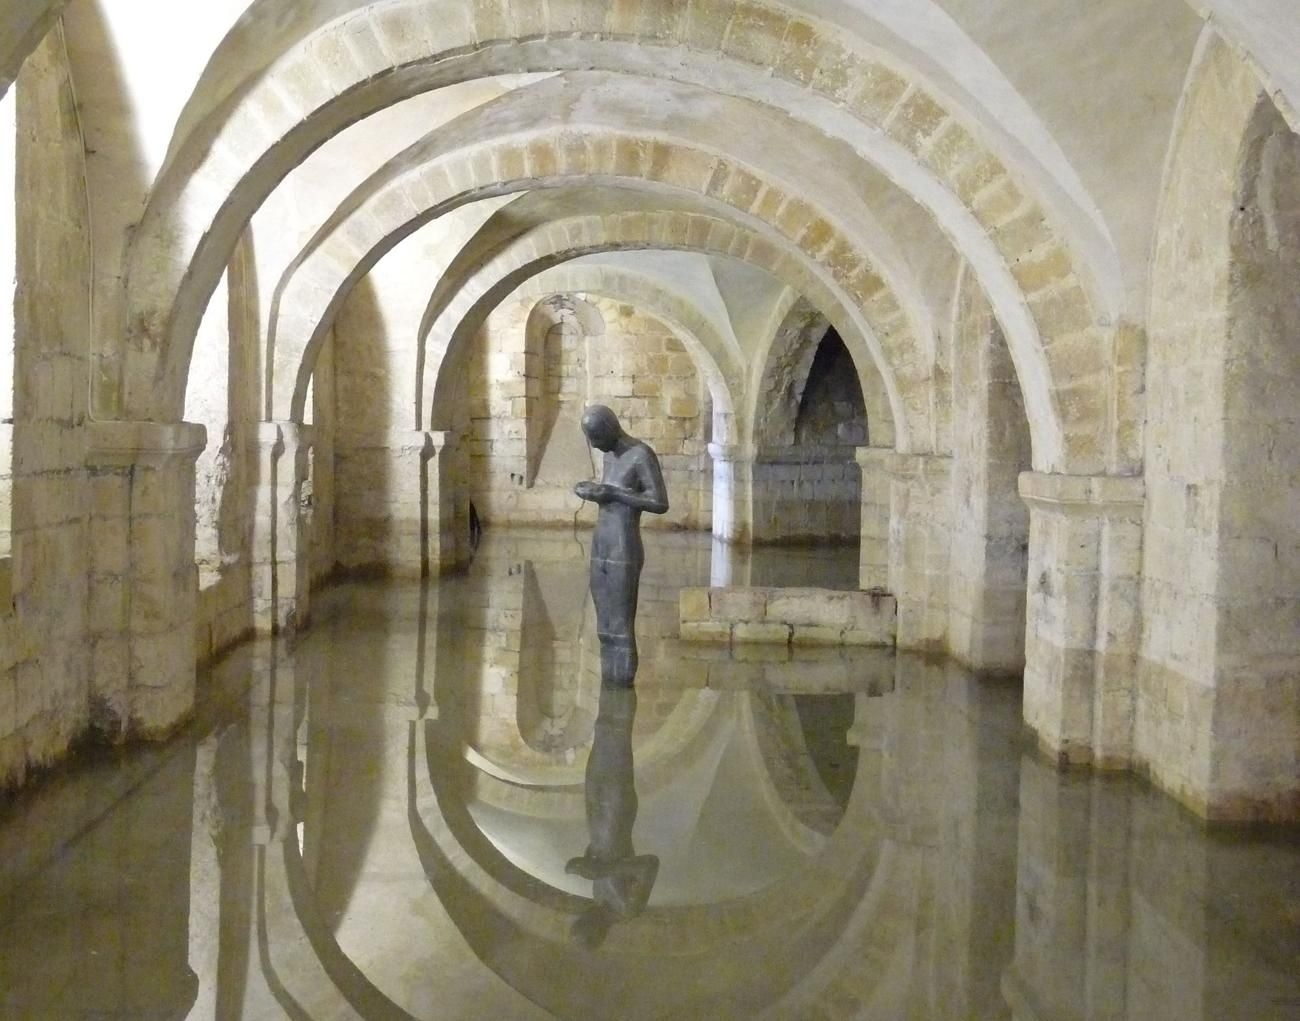 Sound II by Anthony Gormley, in The Crypt of Winchester Cathedral, 23rd November 2012